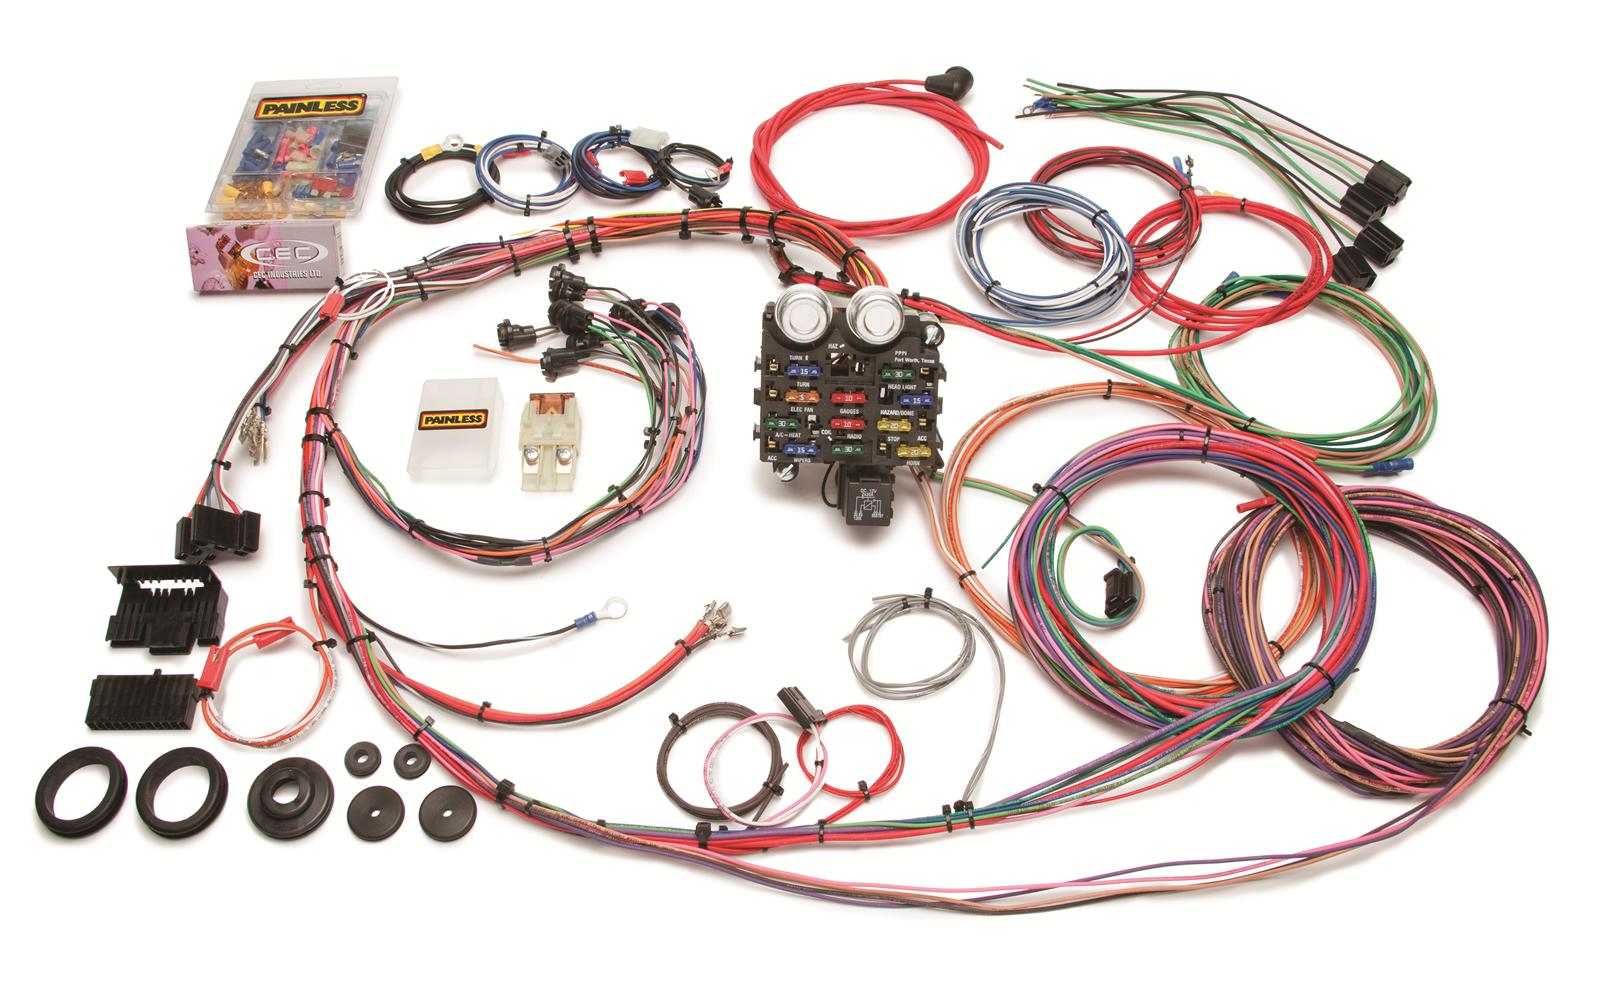 prf 10112_xl painless performance 19 circuit gmc chevy truck harnesses 10112 gm truck wiring harness at crackthecode.co